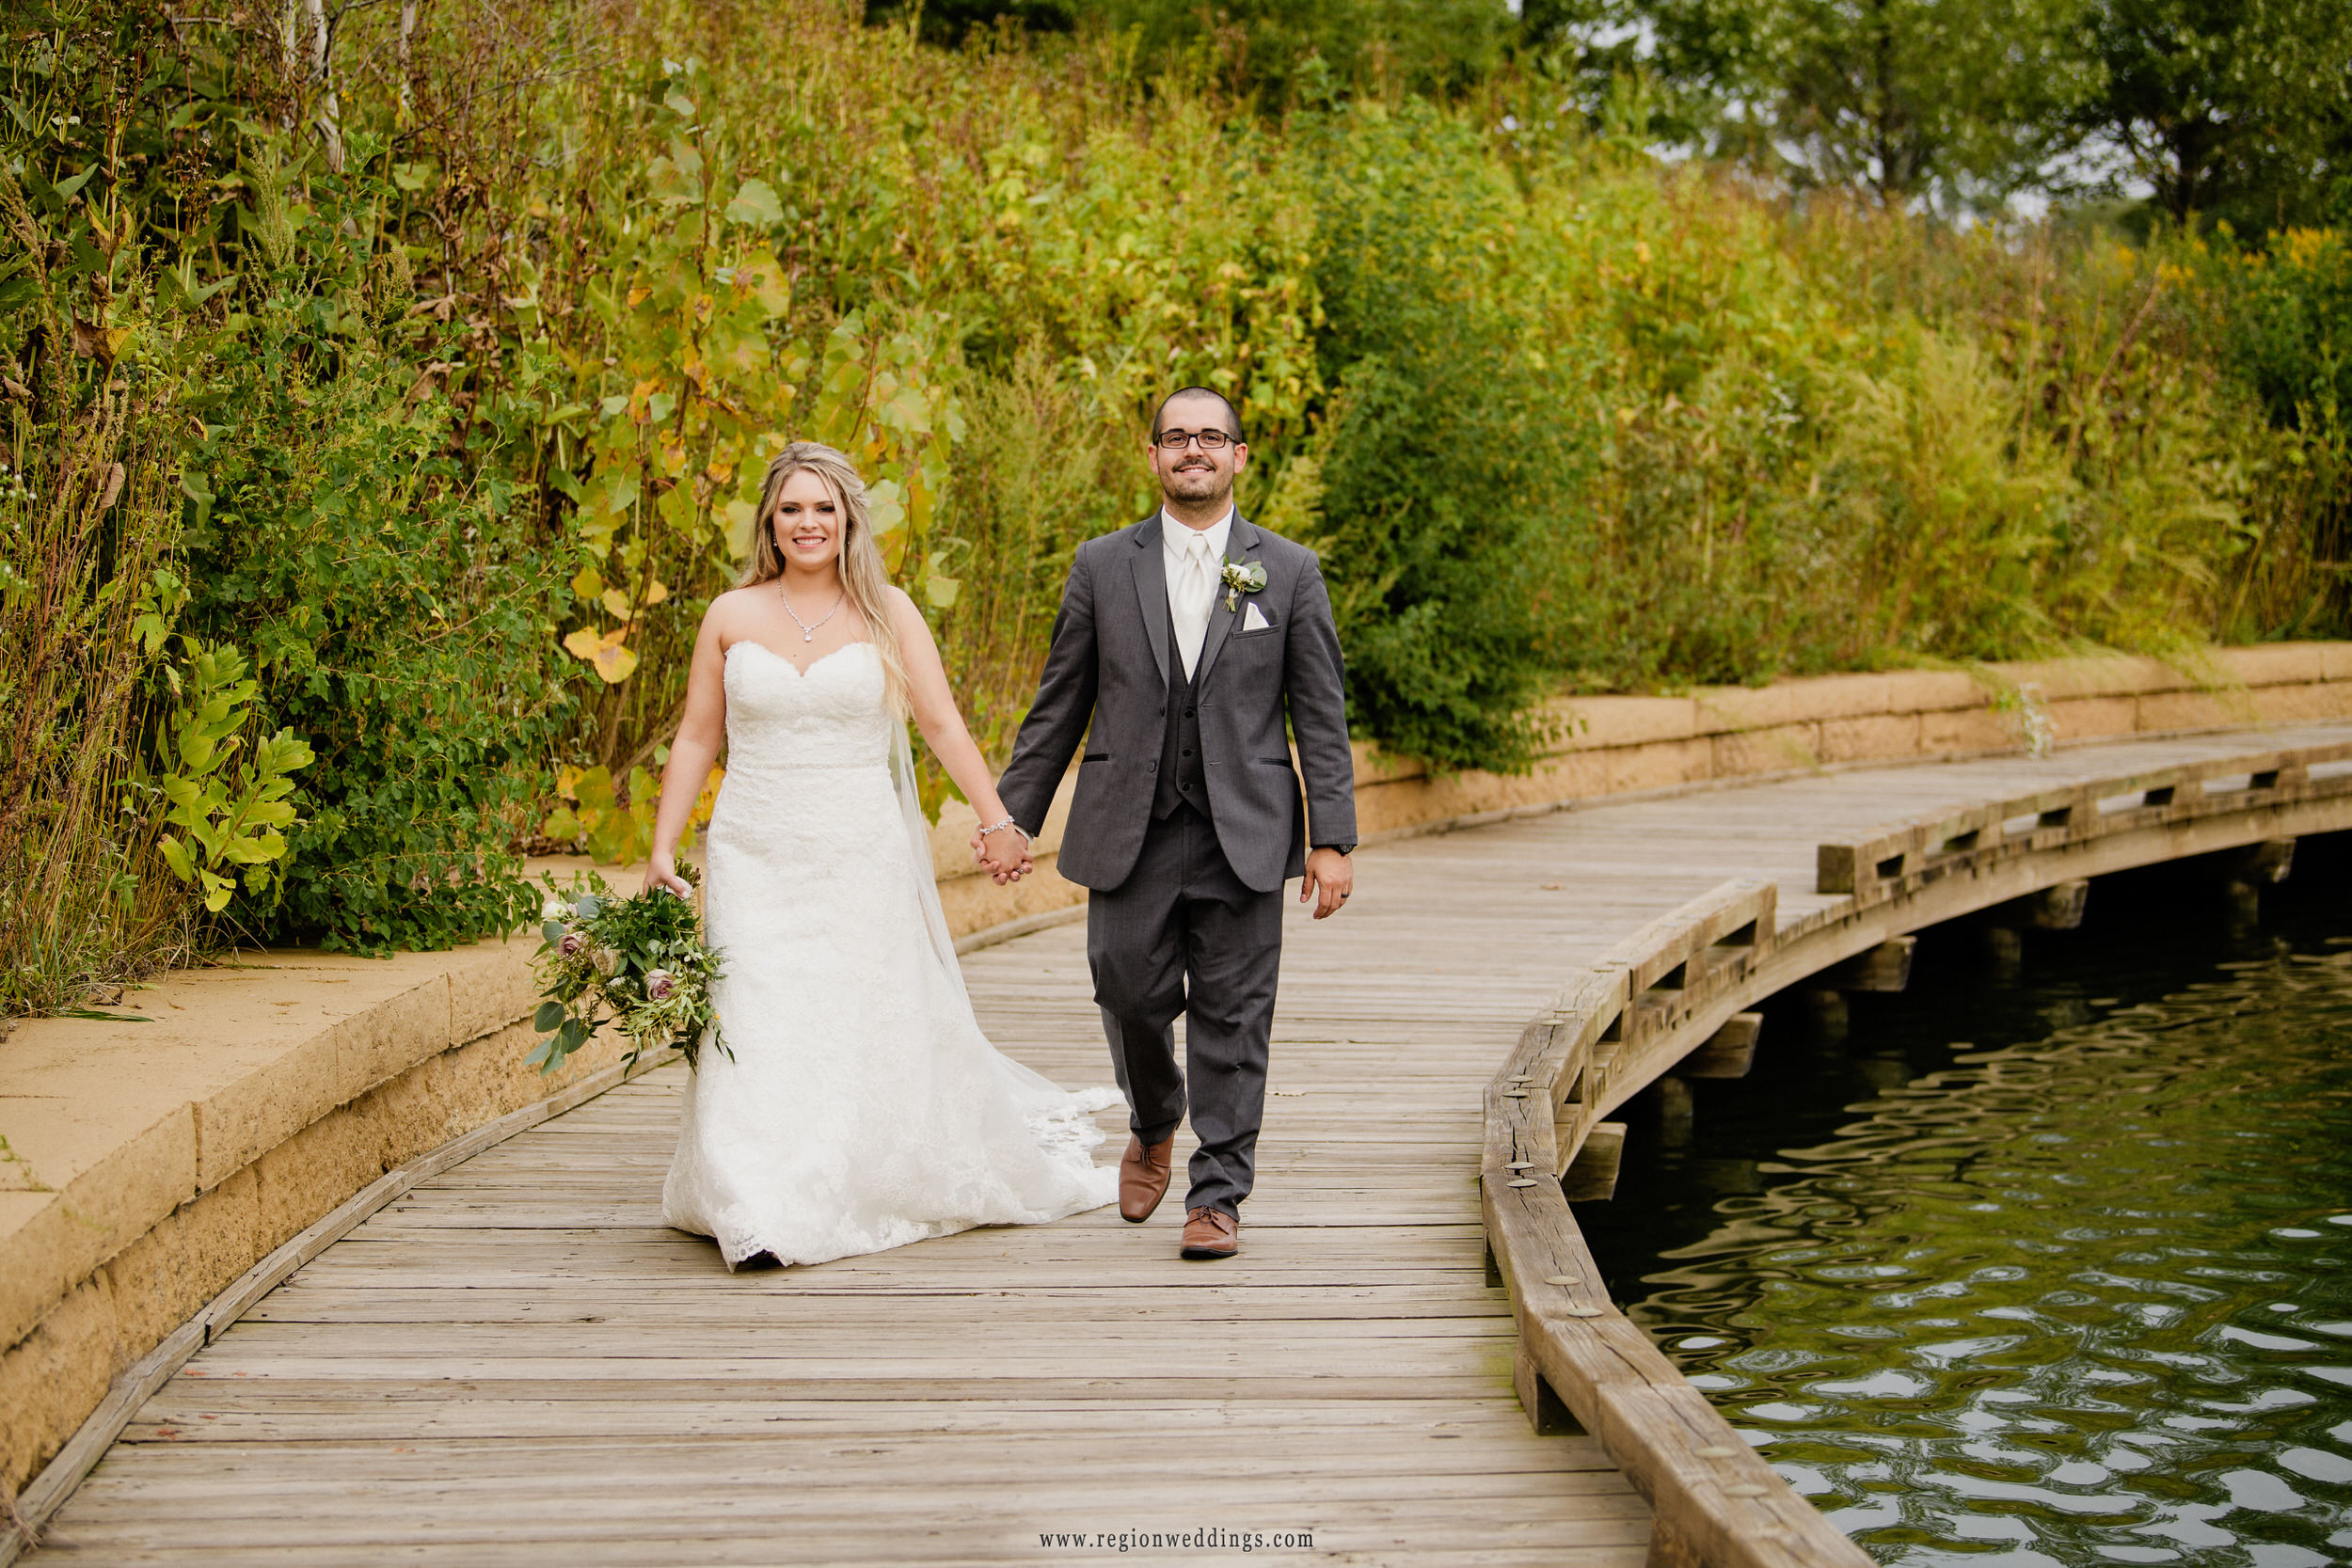 Bride and groom take a walk along the lake at Centennial Park in Munster, Indiana.